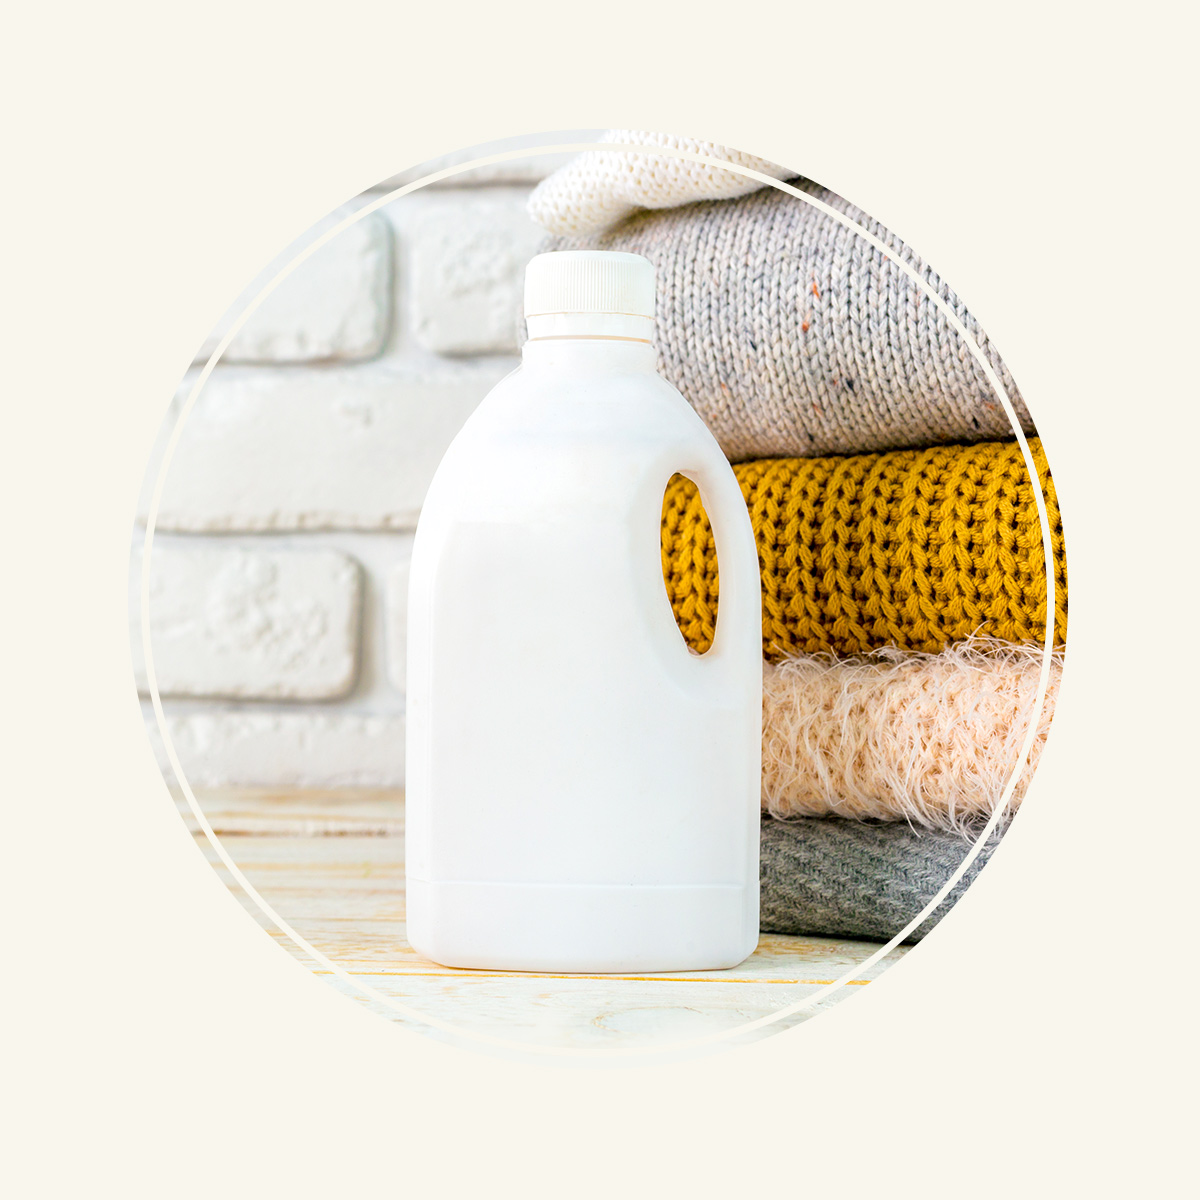 Stack of folded sweaters and white detergent product on wooden counter attached to a white brick wall.